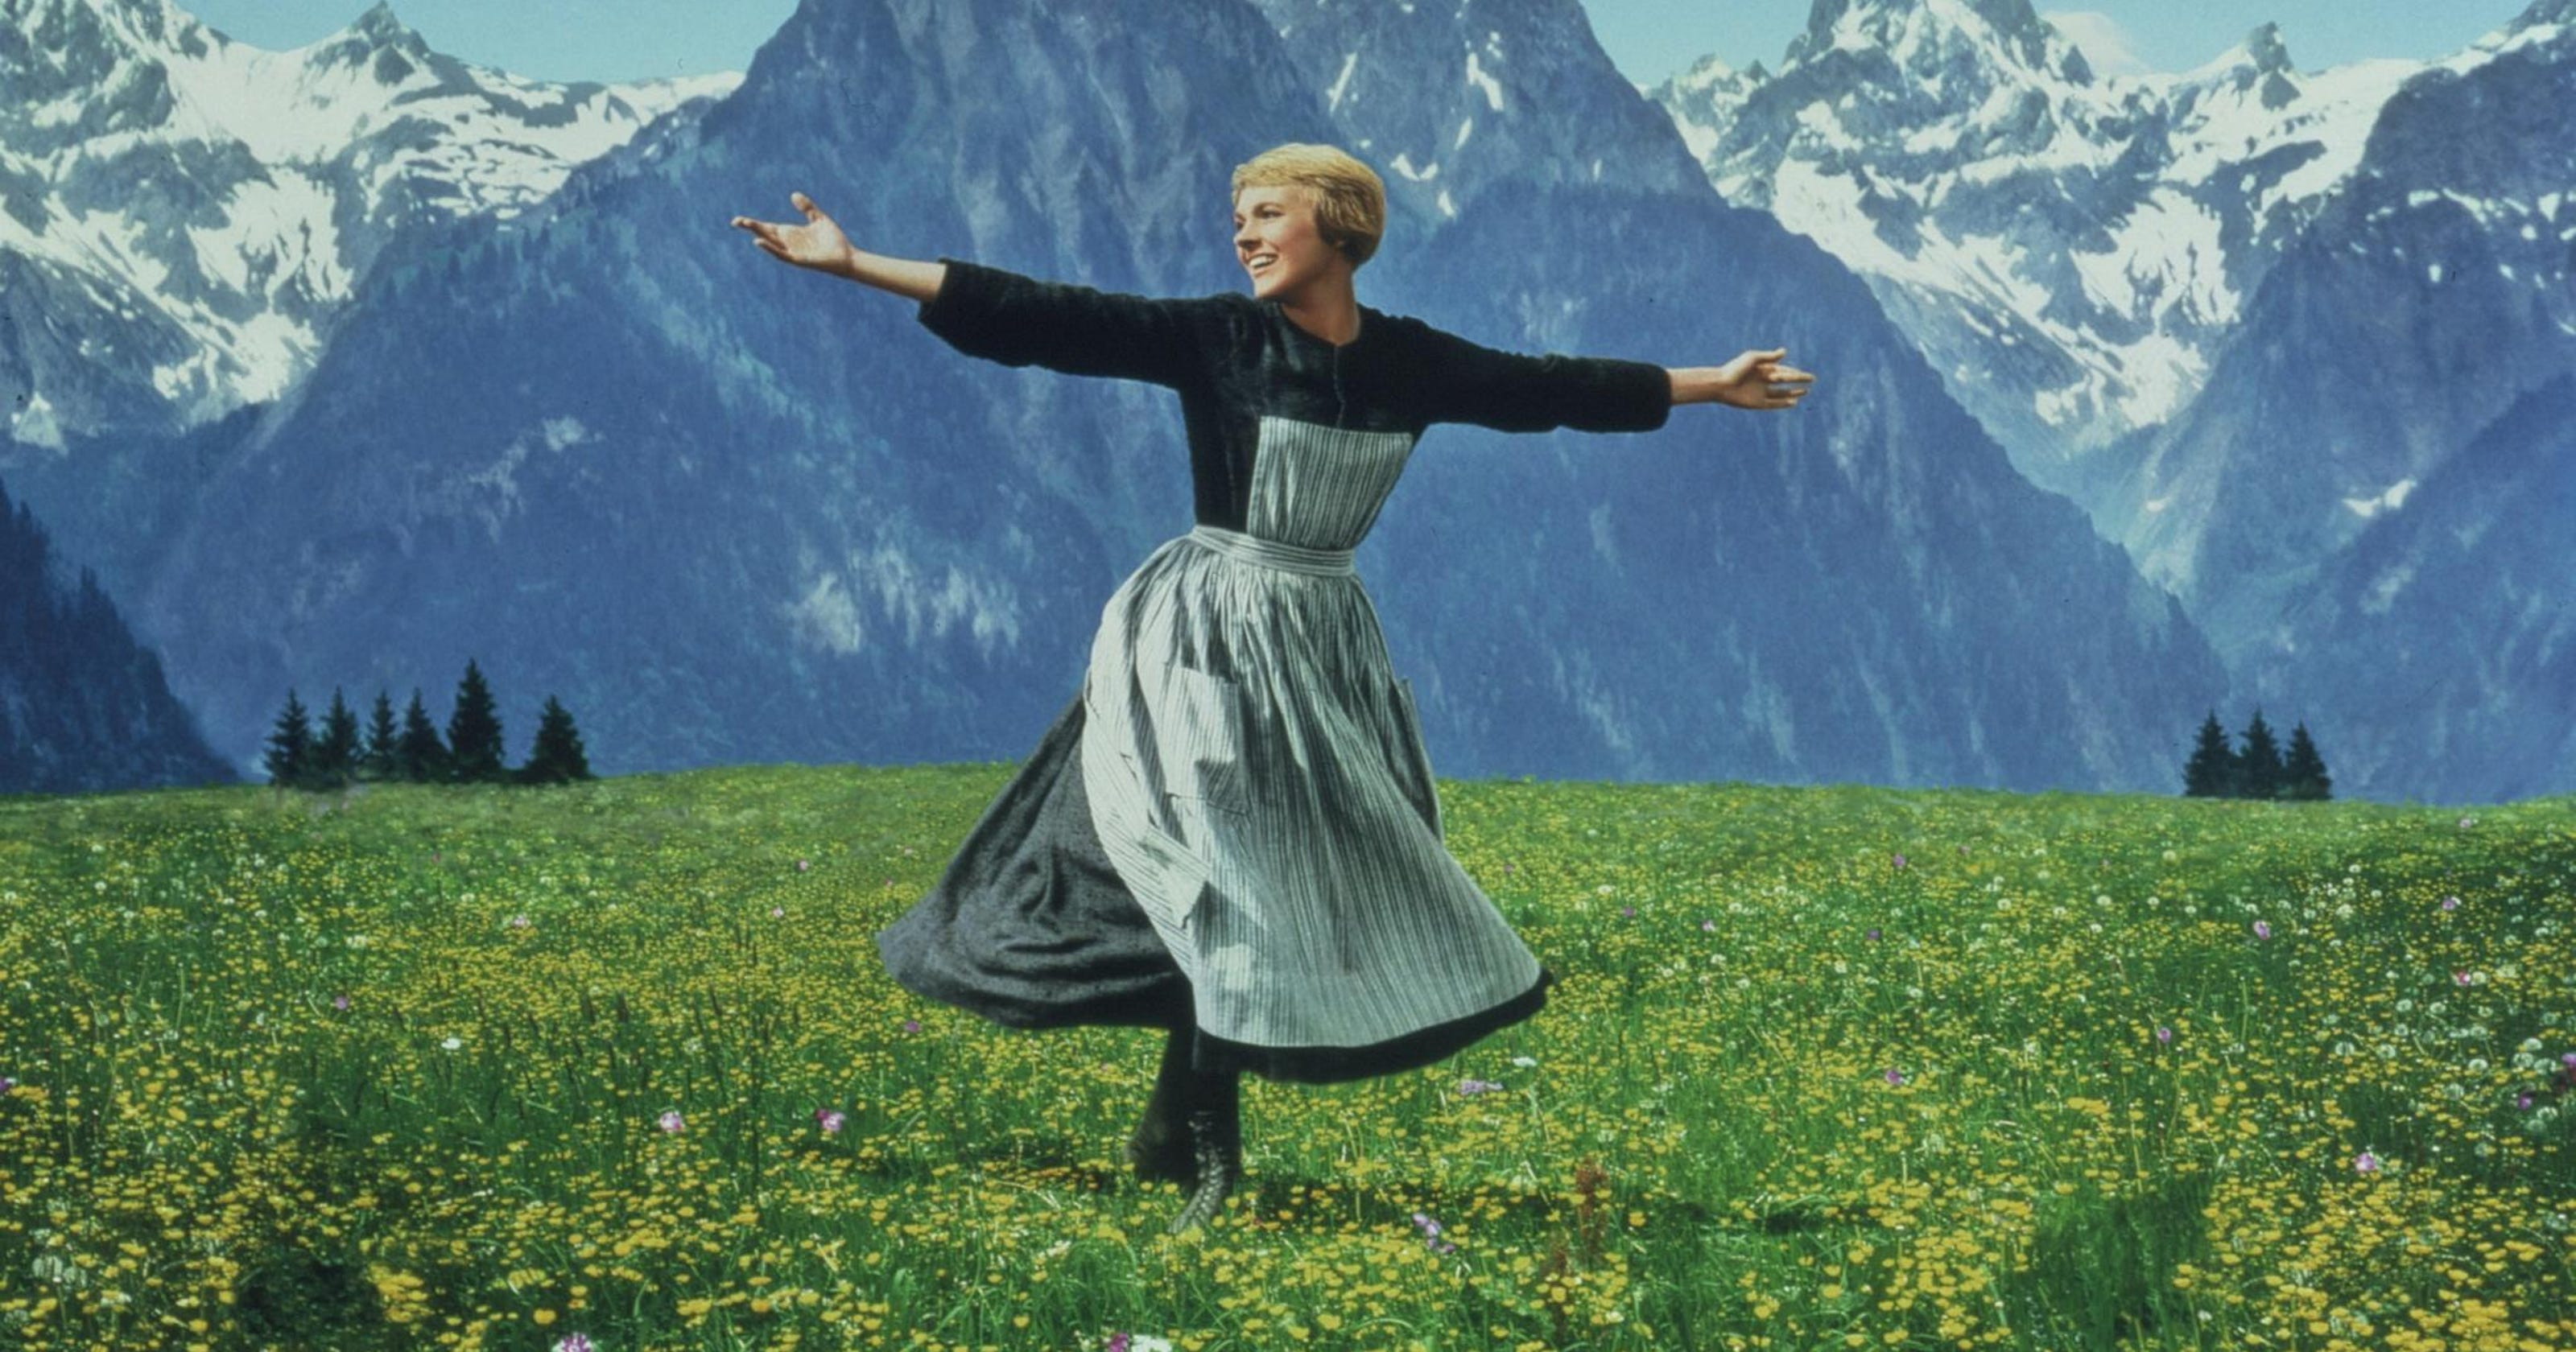 The hills are alive with the sound of mucus, er, music